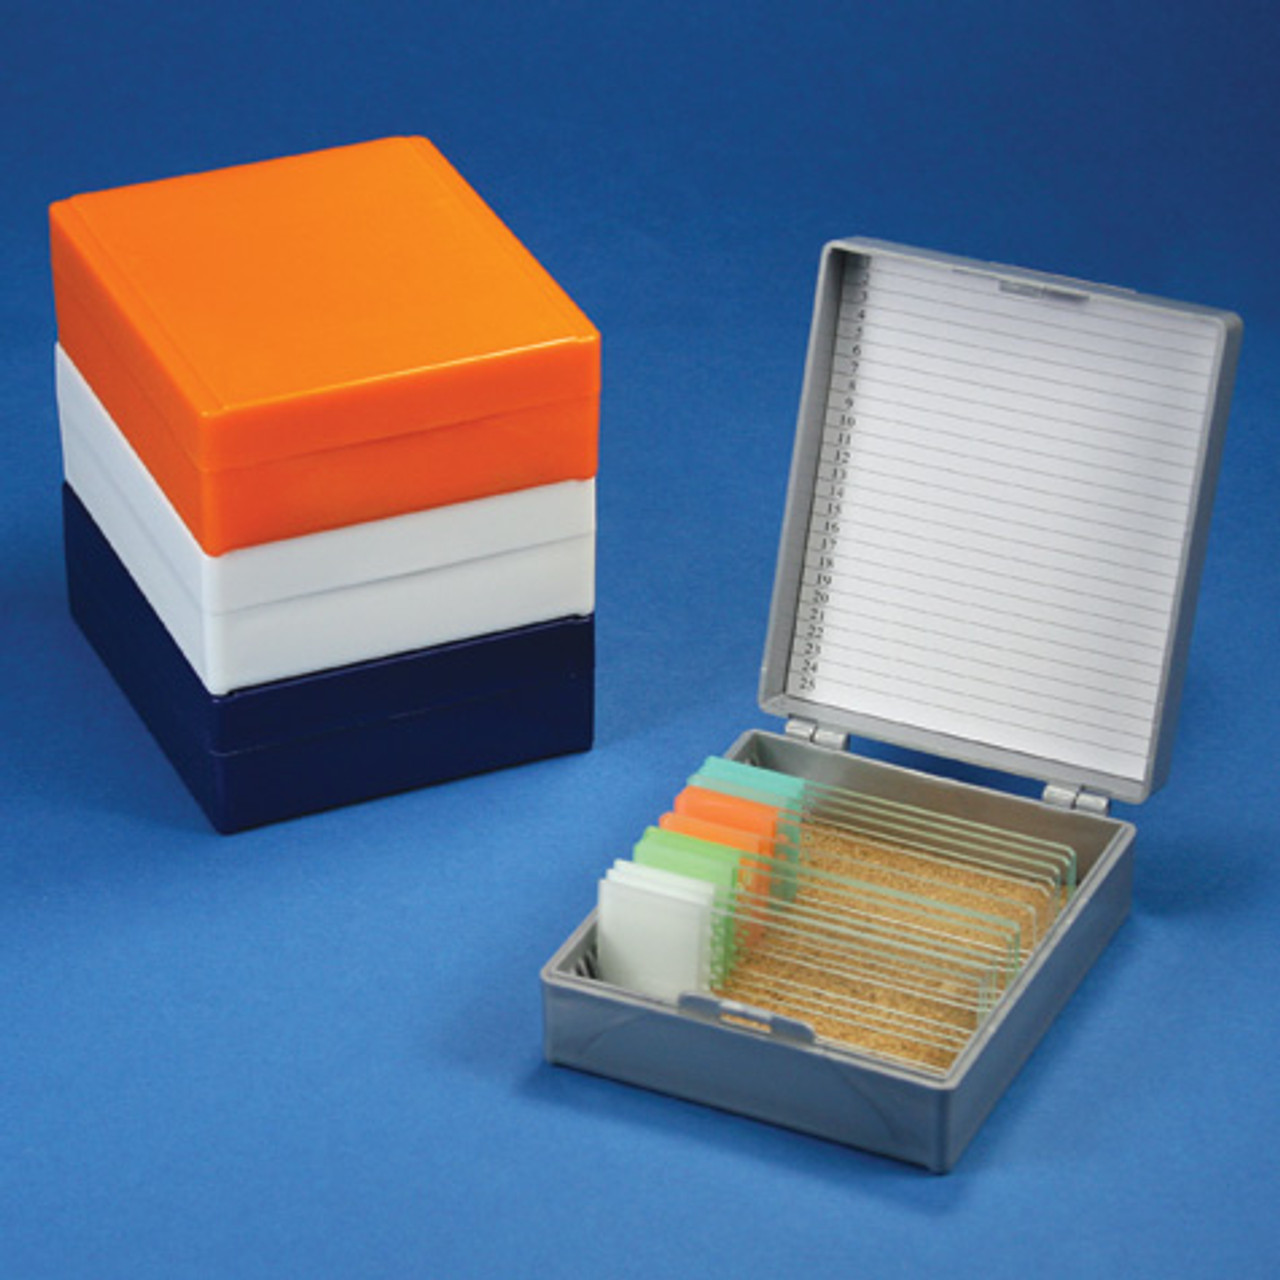 RED nickel-plated clasp Microscope slide storage box foam lined holds 100 slides EA Stellar Scientific